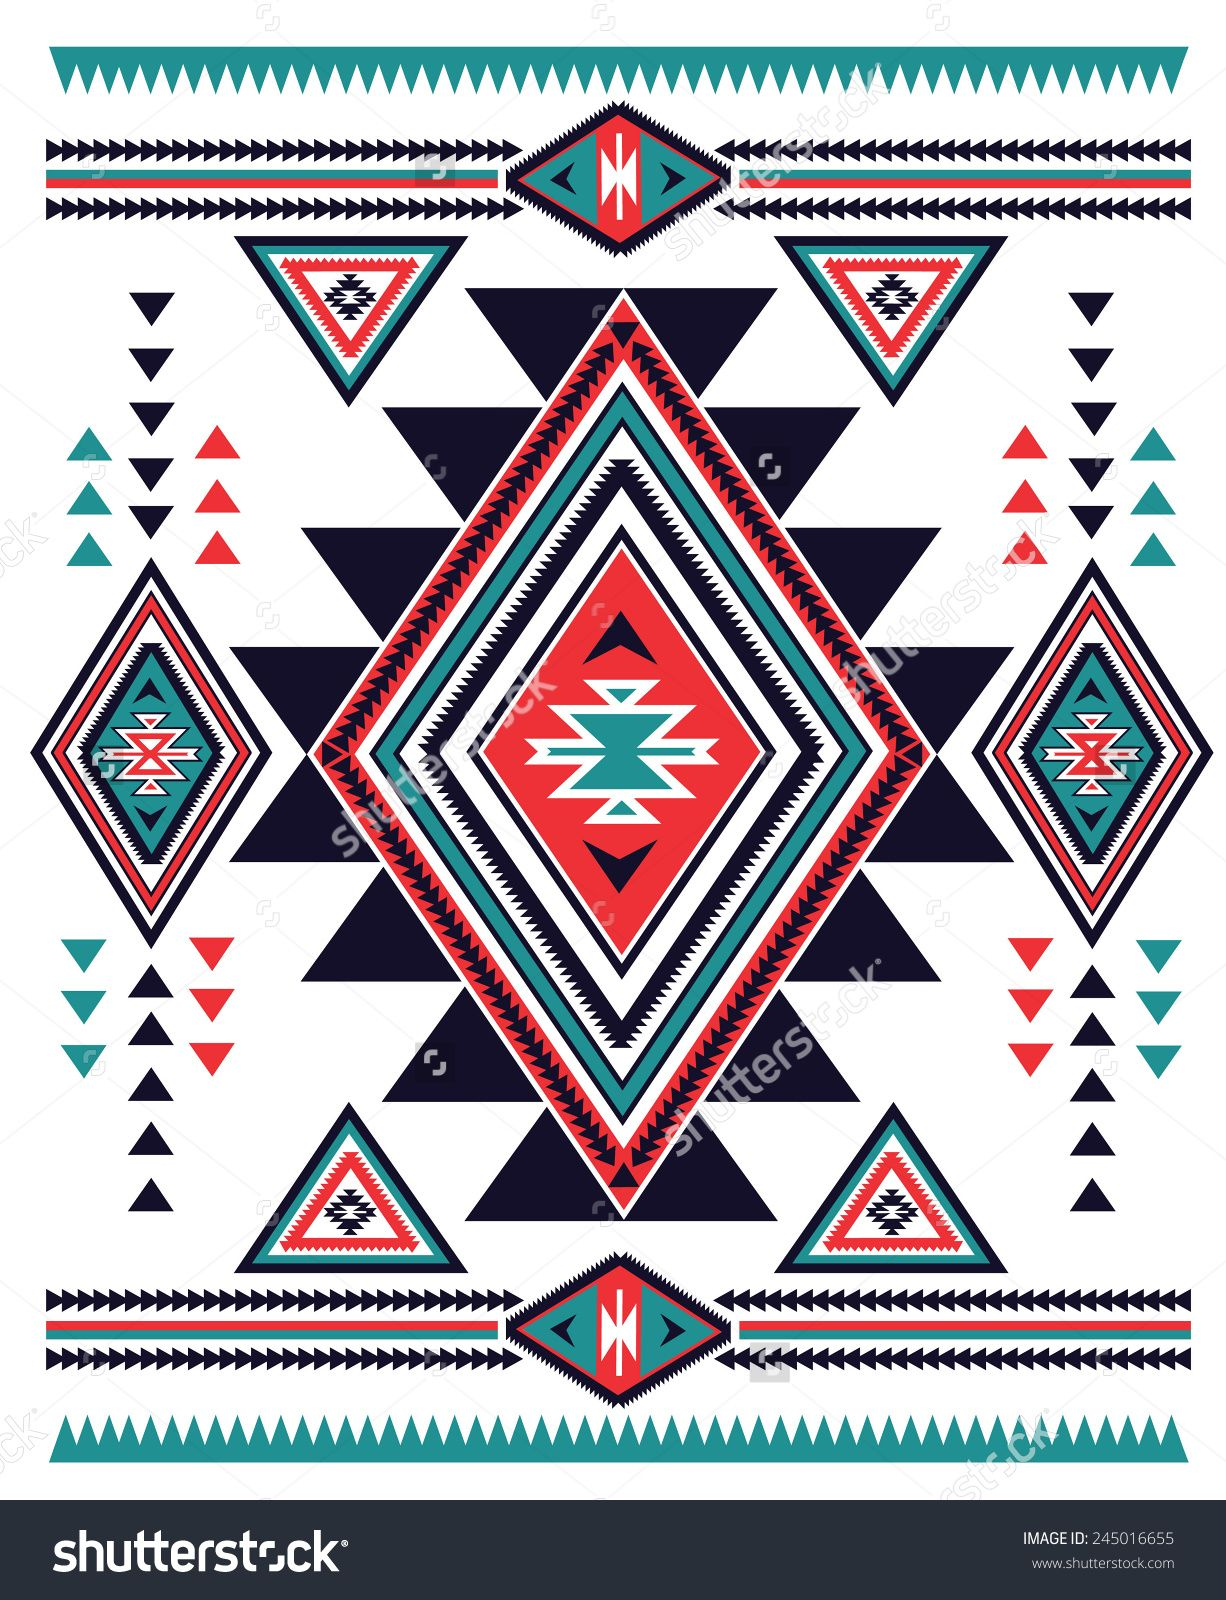 Navajo Aztec Big Pattern Vector Illustration - 245016655 : Shutterstock